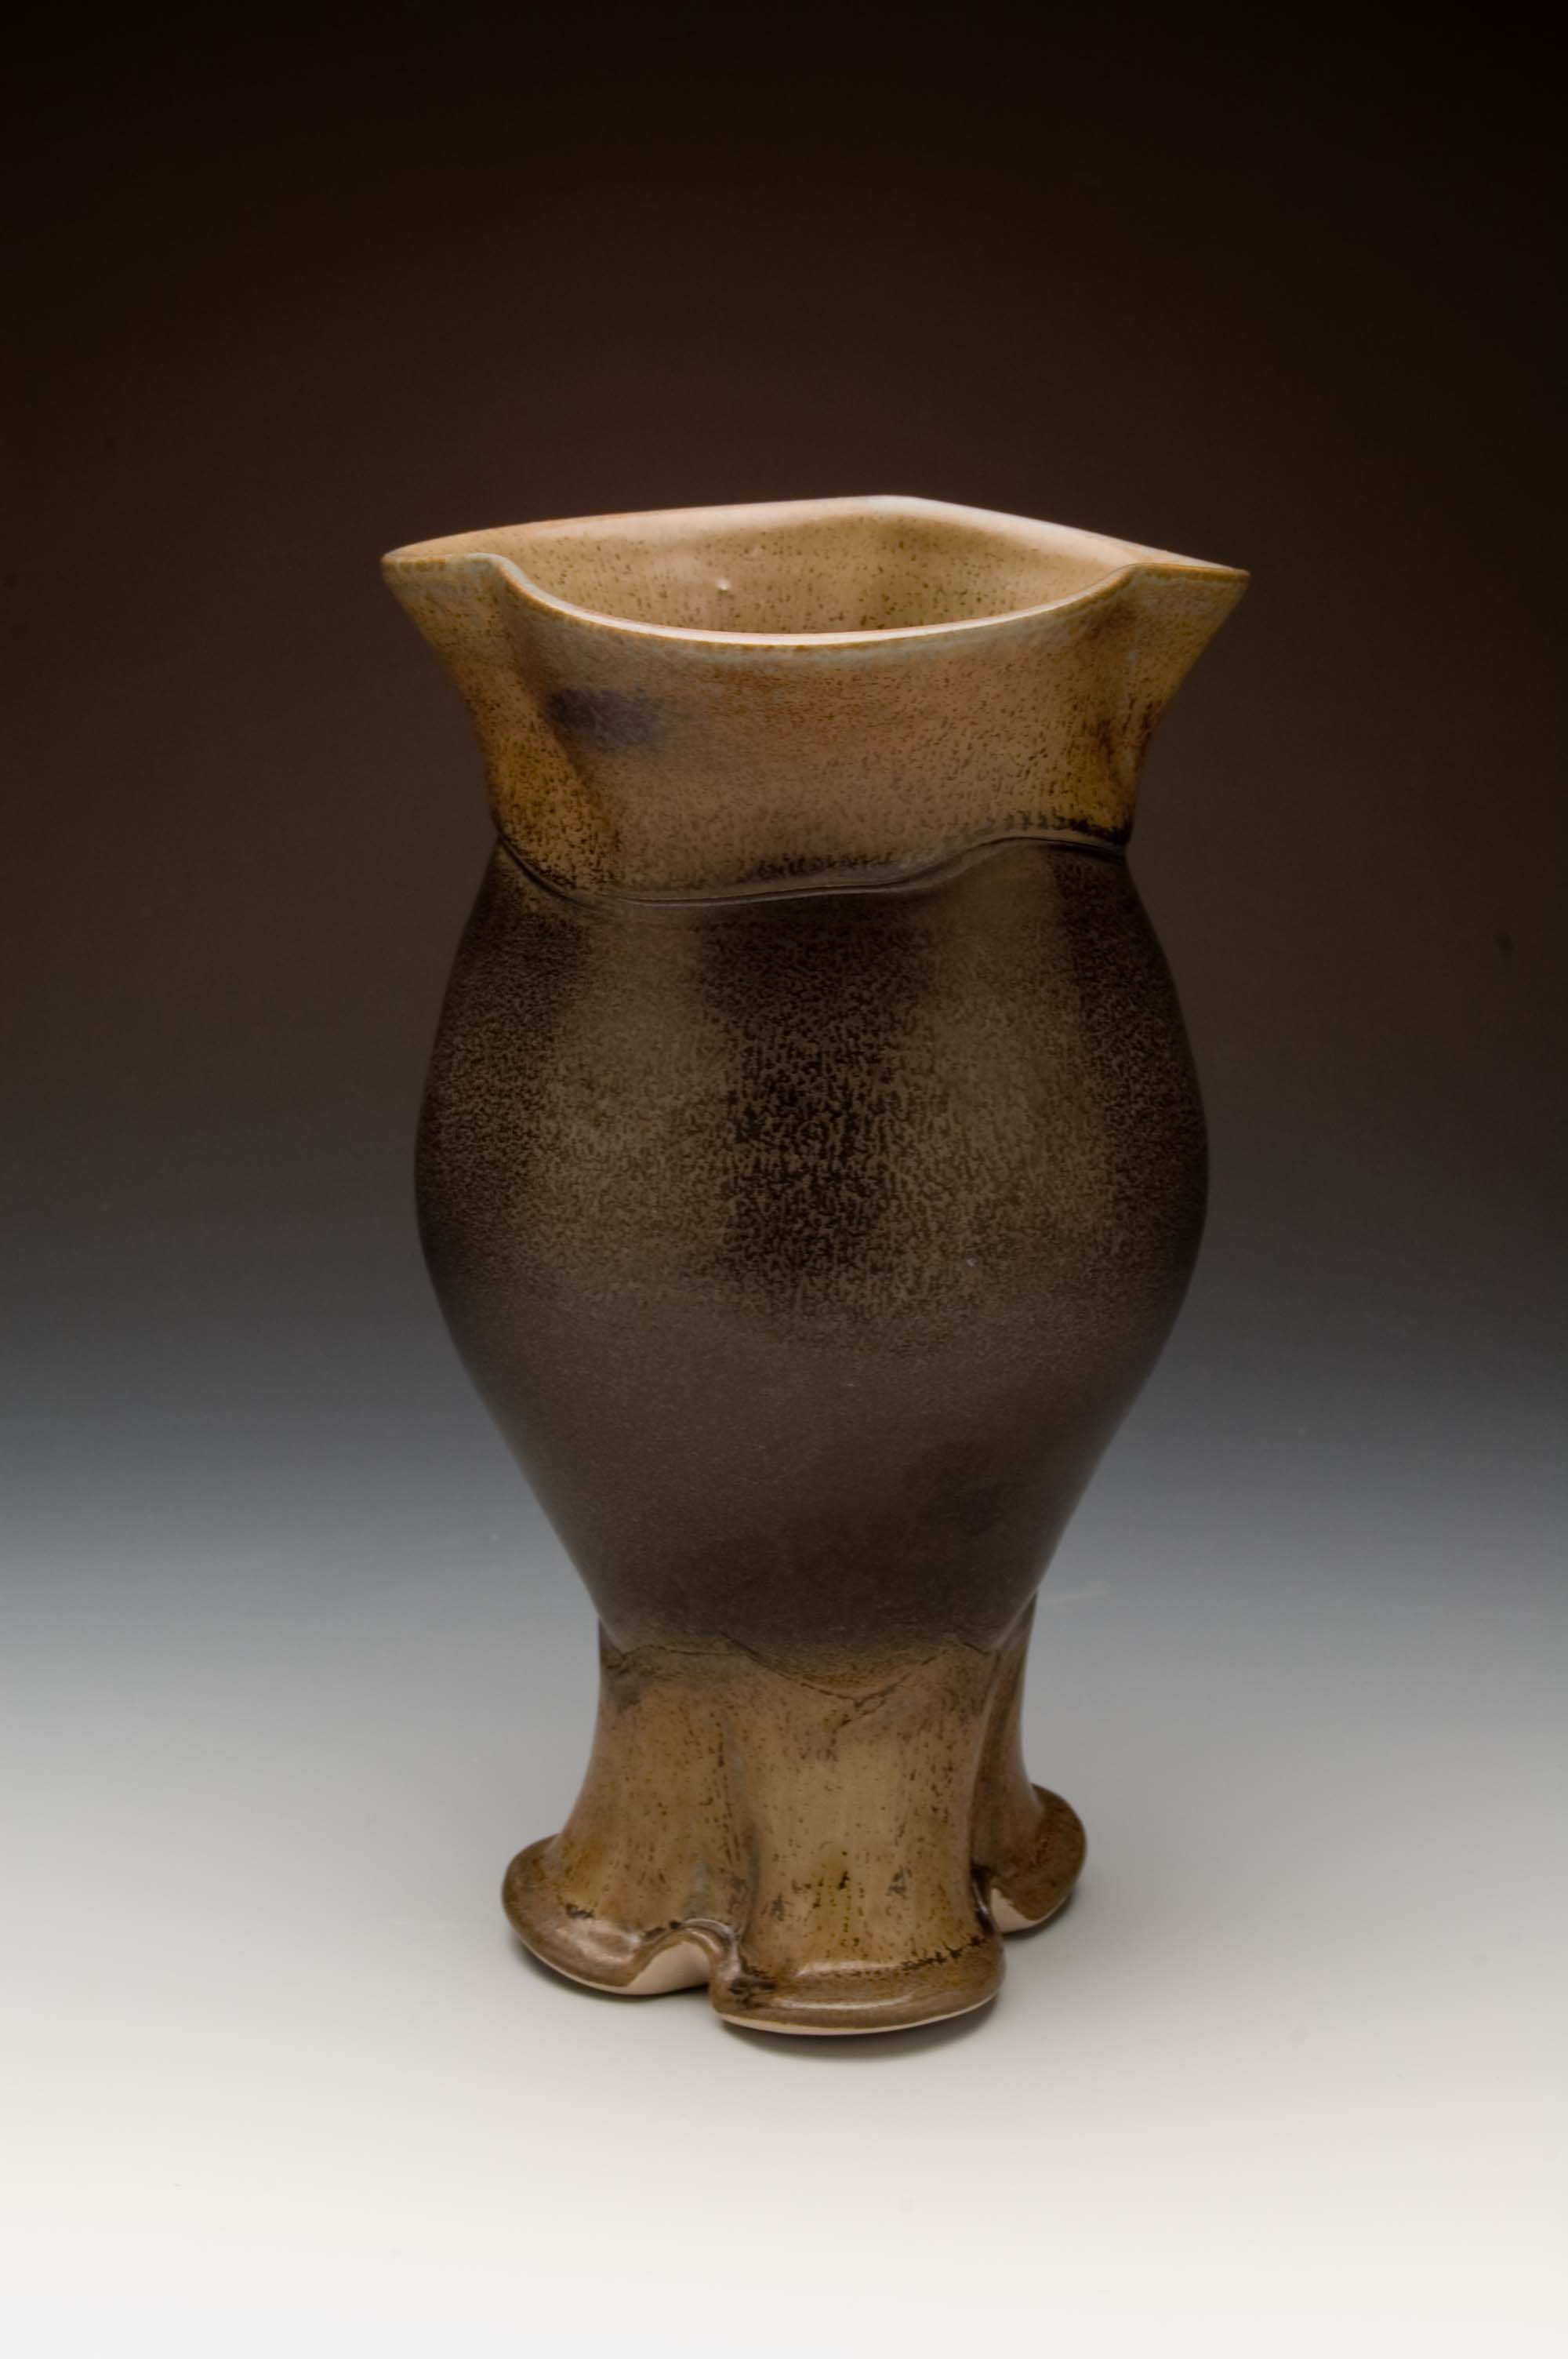 exhibition at ogden museum of southern craft and design by conner burns